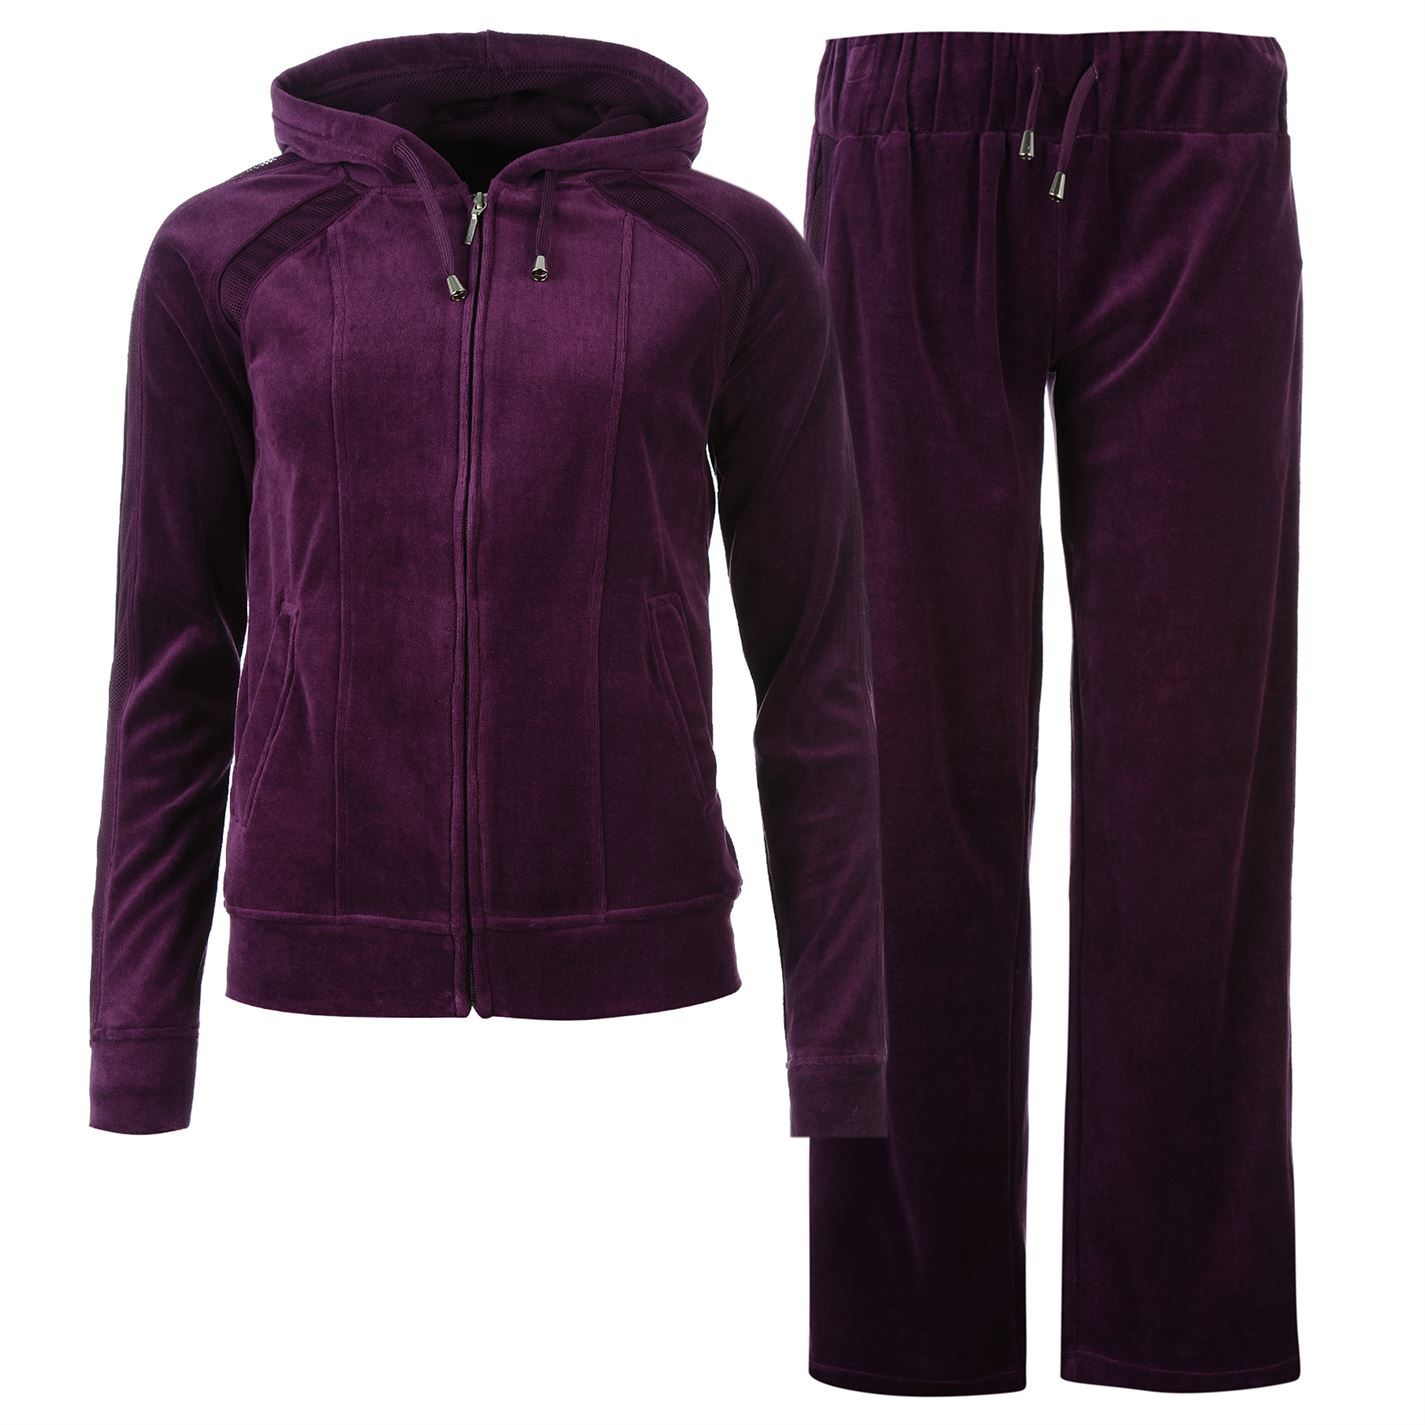 Find great deals on eBay for tracksuits ladies. Shop with confidence.